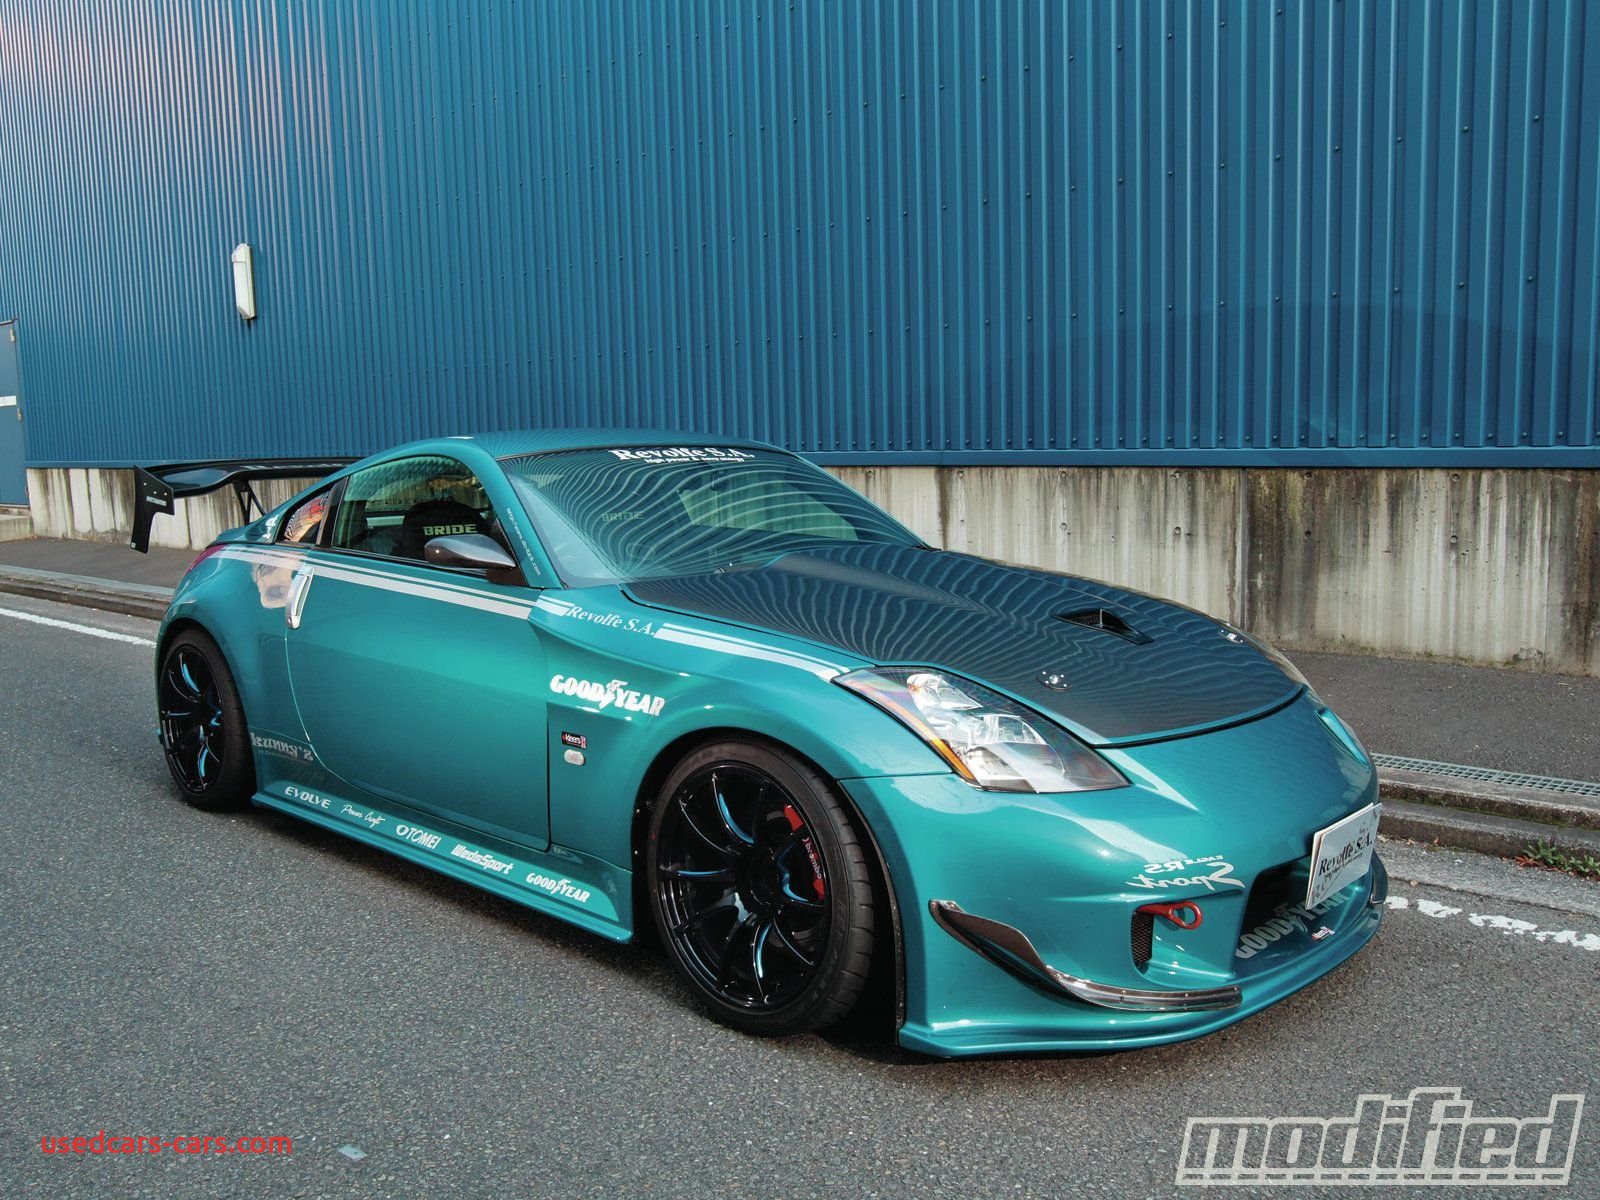 Nissan 350z New 350z Cars Coupe Japan Nissan Tuning Wallpapers Hd